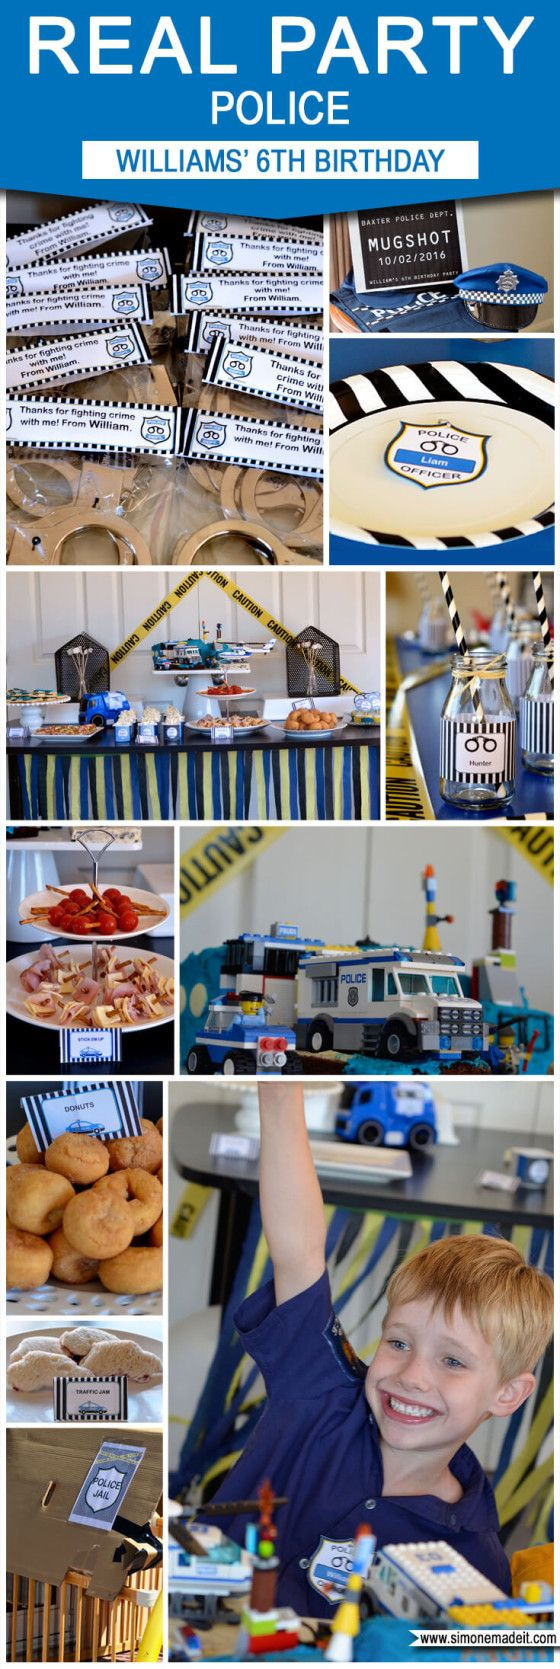 Williams' 6th Police Birthday Party | Police Birthday Party Ideas